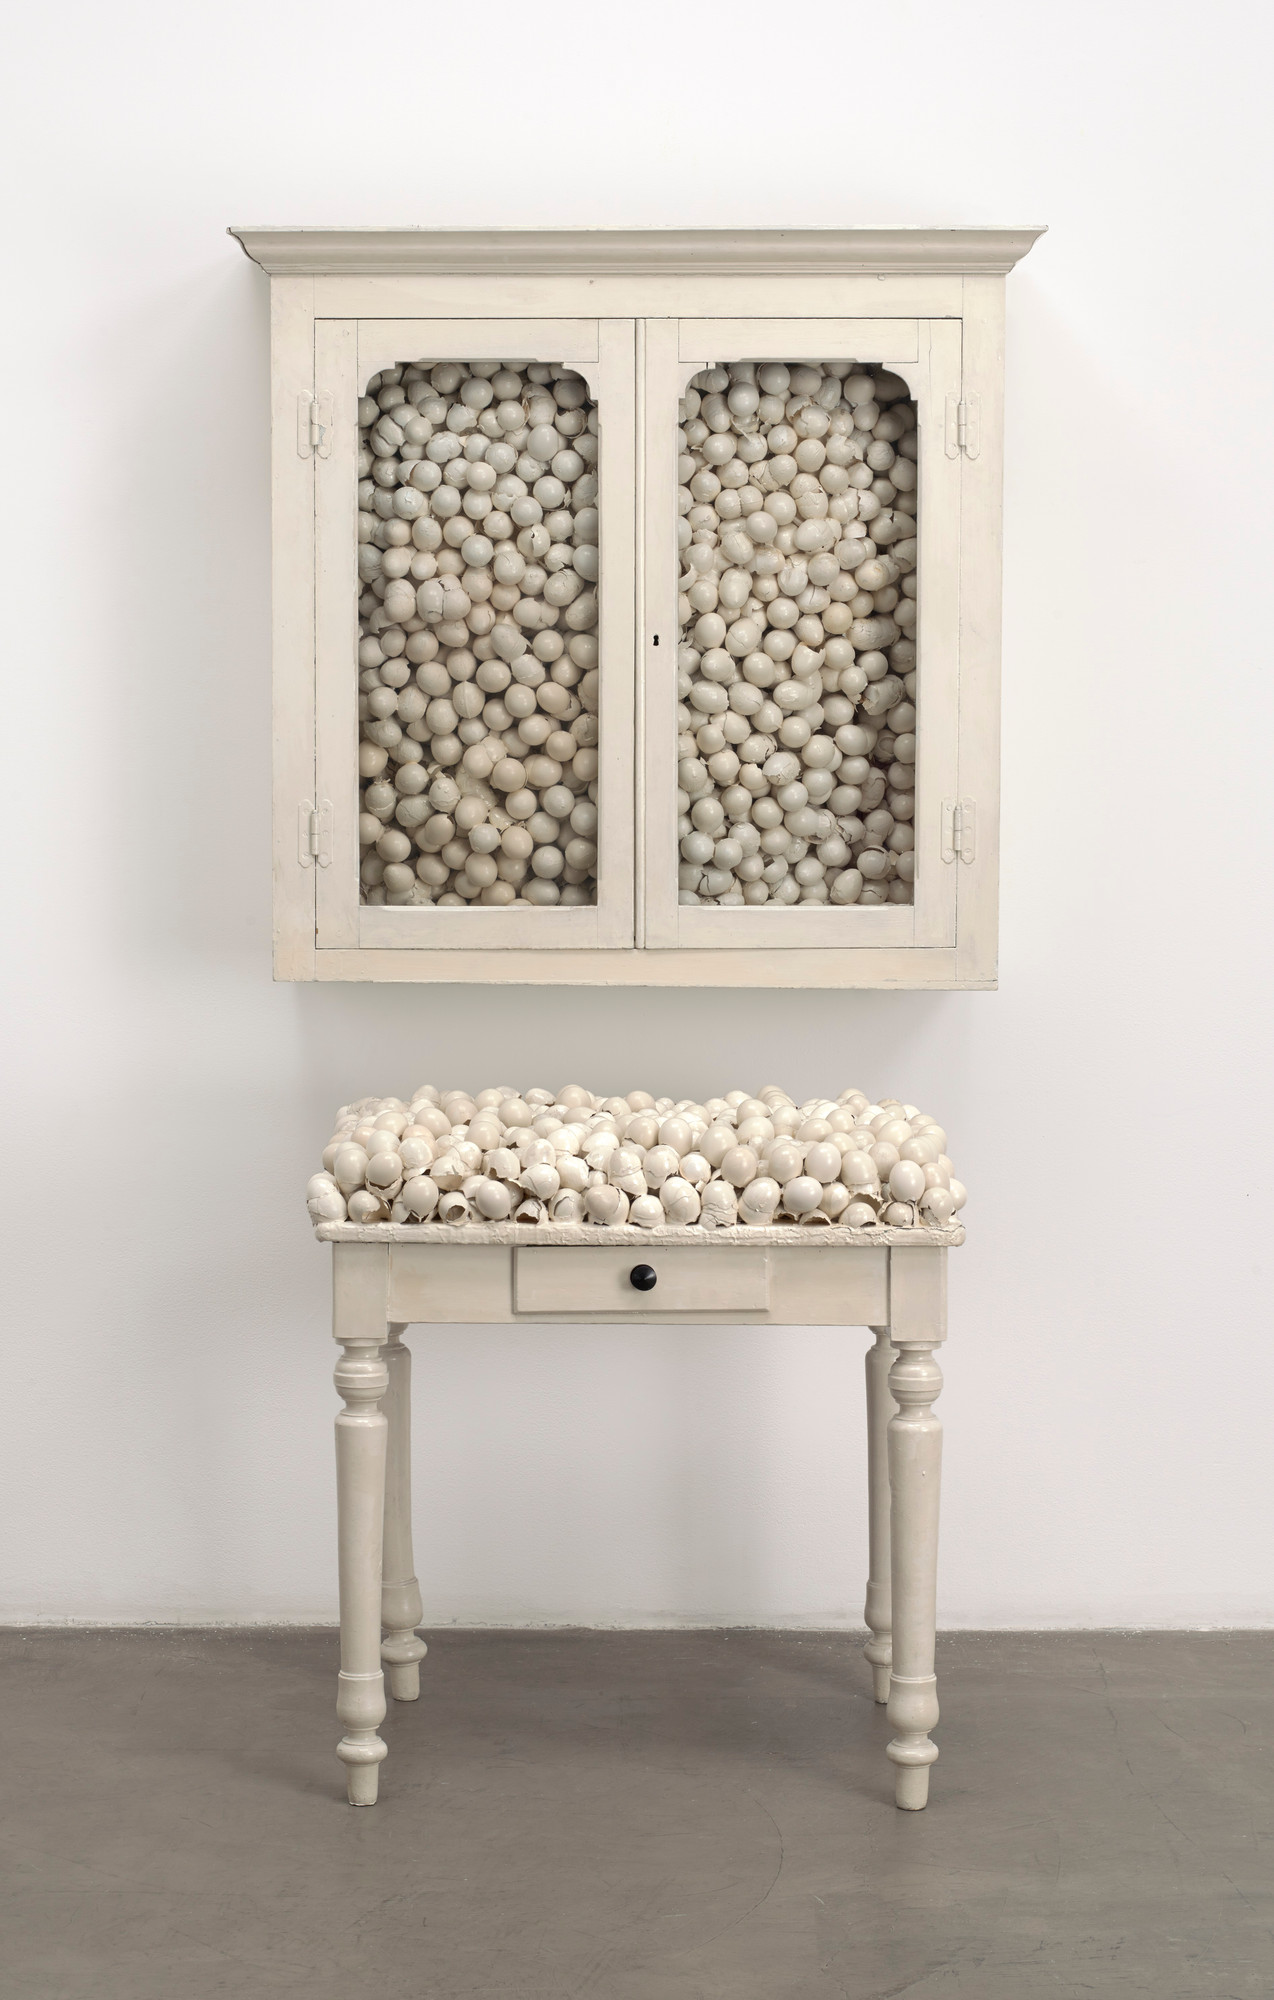 Marcel Broodthaers. Armoire blanche et table blanche (White Cabinet and White Table). 1965. Painted cabinet, table, and eggshells; cabinet 33 7⁄8 × 32 1⁄4 × 24 1/2″ (86 × 82 × 62 cm), table 41 × 39 3⁄8 × 15 3/4″ (104 × 100 × 40 cm). The Museum of Modern Art, New York. Fractional and promised gift of Jo Carole and Ronald S. Lauder. © 2015 Estate of Marcel Broodthaers/Artists Rights Society (ARS), New York/SABAM, Brussels